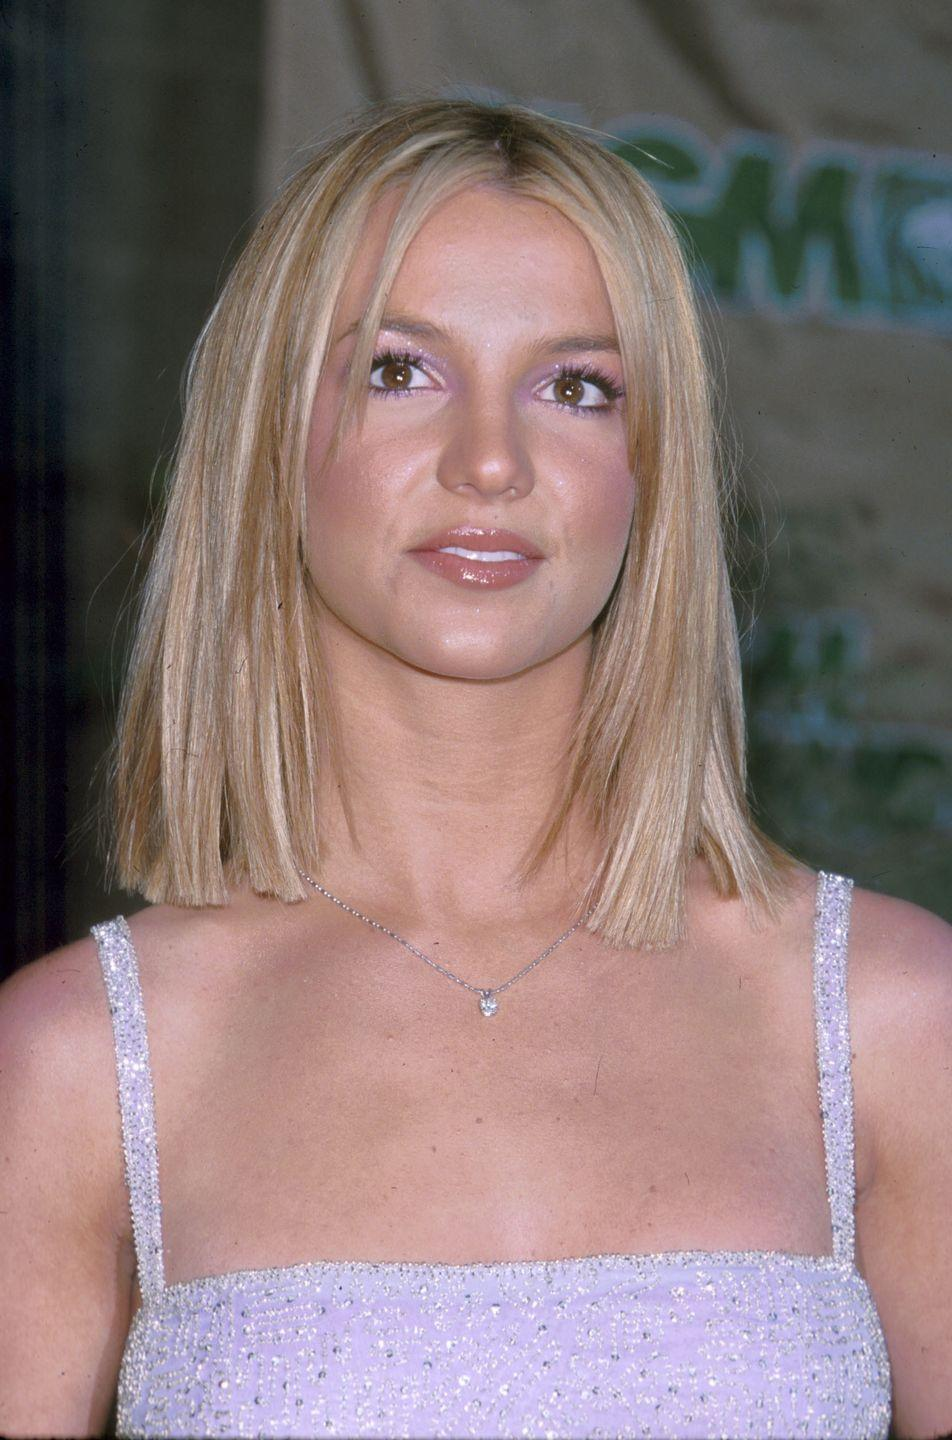 <p>And then as soon as I committed to growing my hair out, she goes and shows up at the Billboard Music Awards with this blunt bob. Always keeping us on our toes, that Brit. </p>